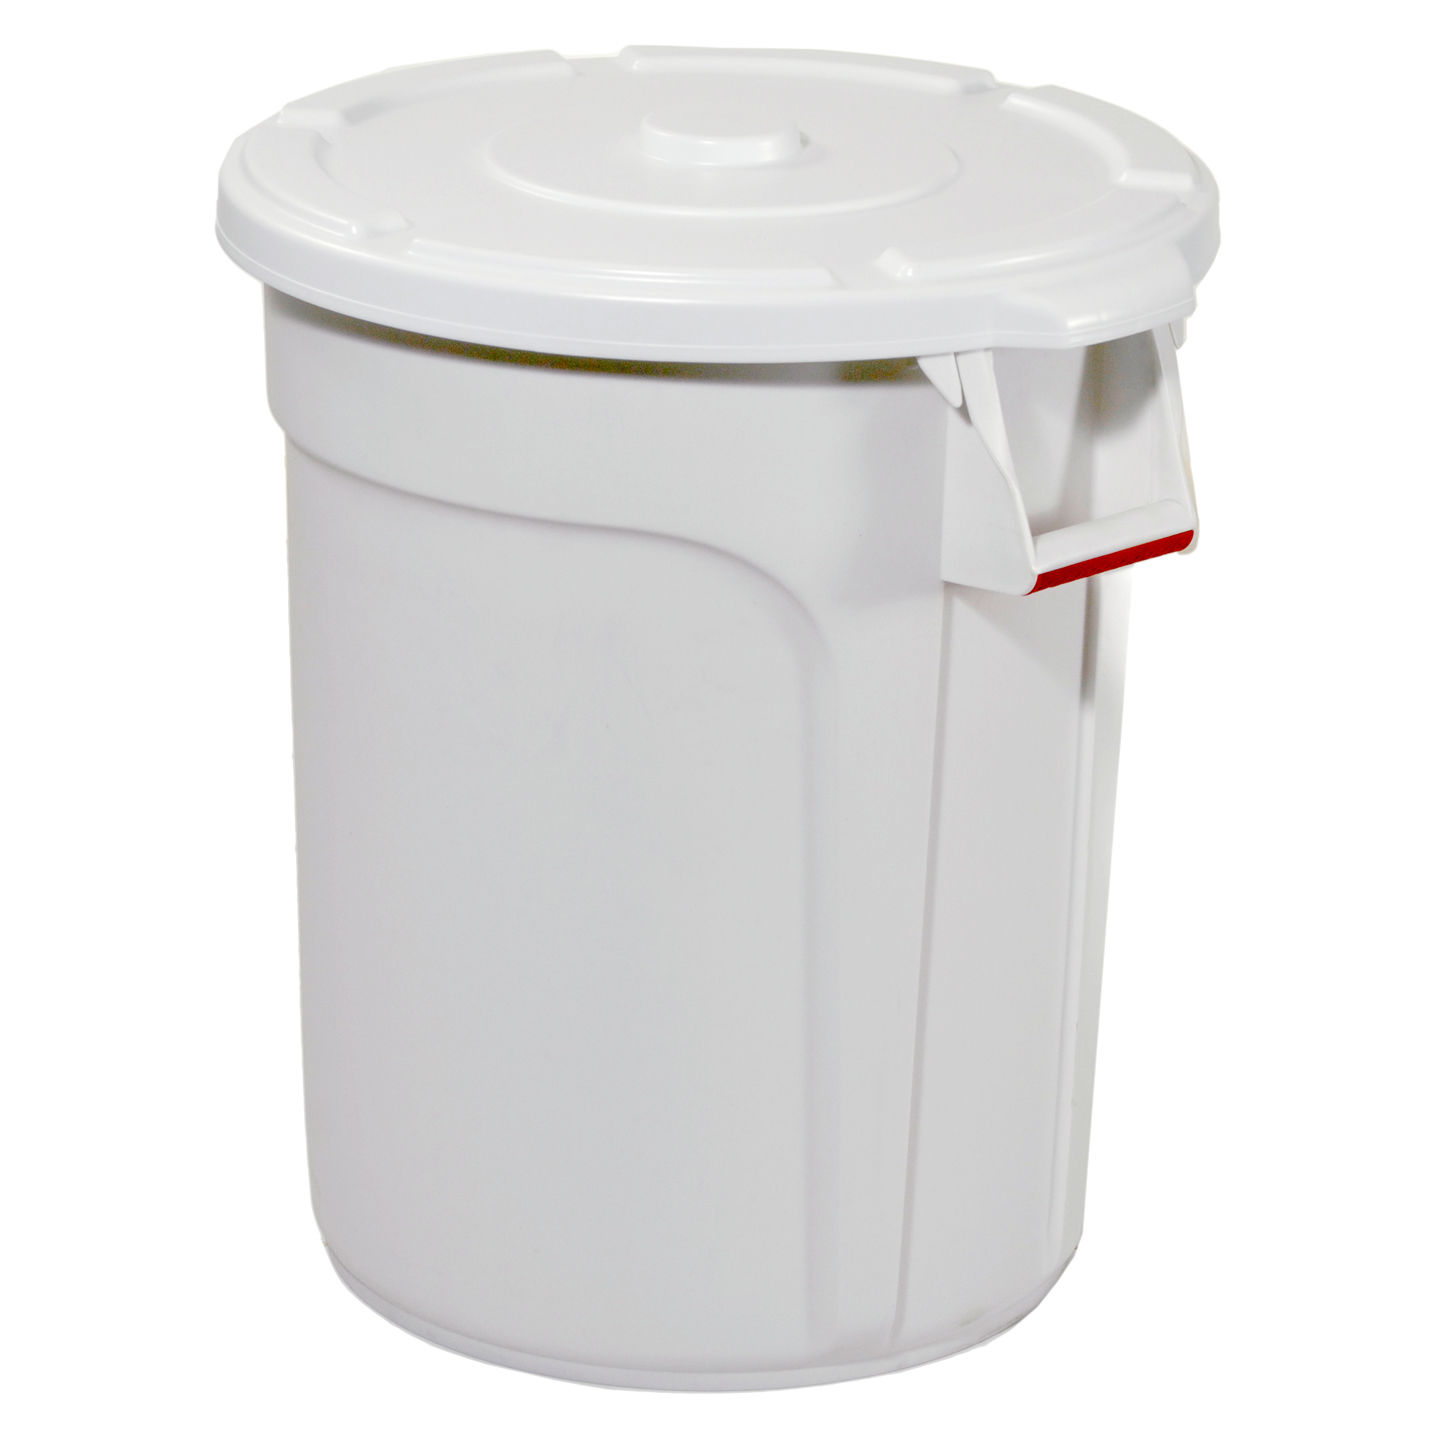 Trust Commercial® Thor Round Bins 38lt White